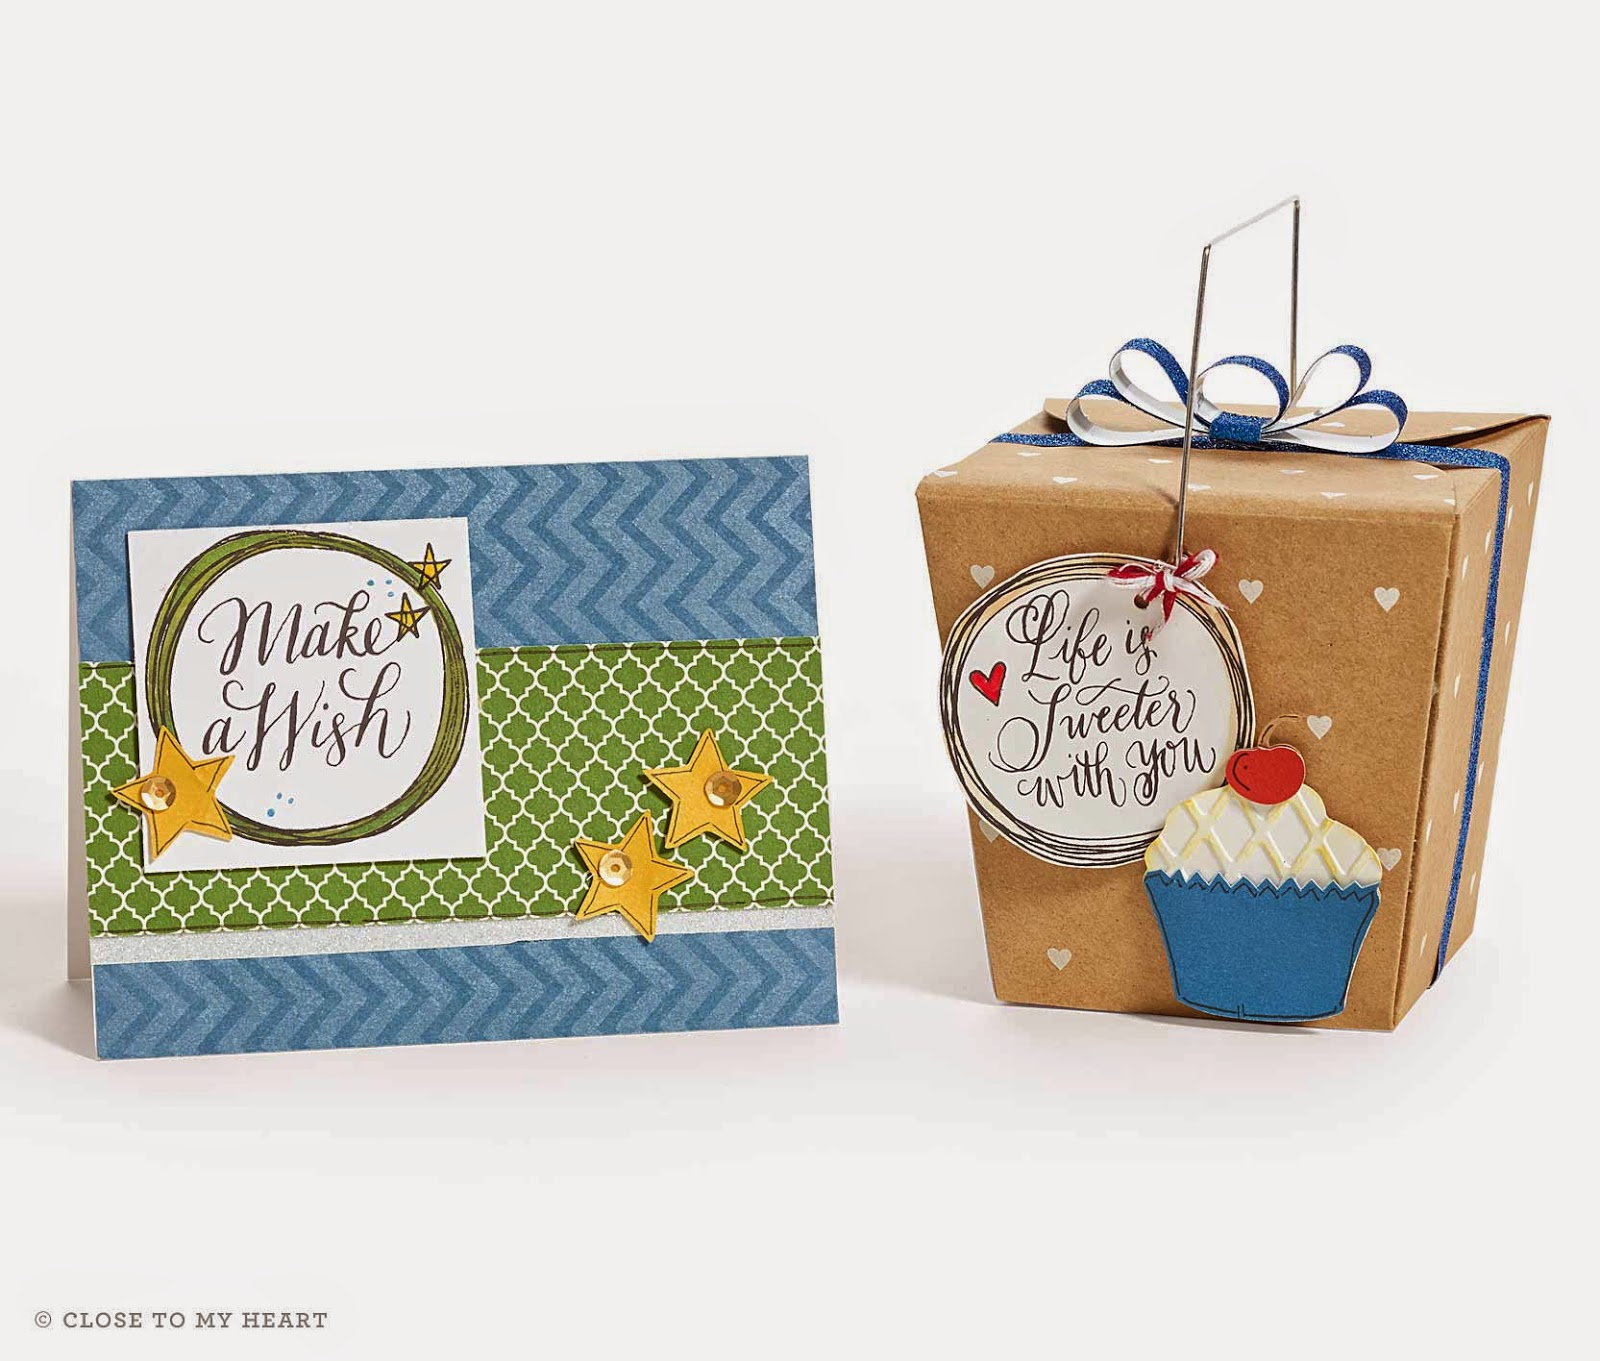 CTMH Card and Treat Box